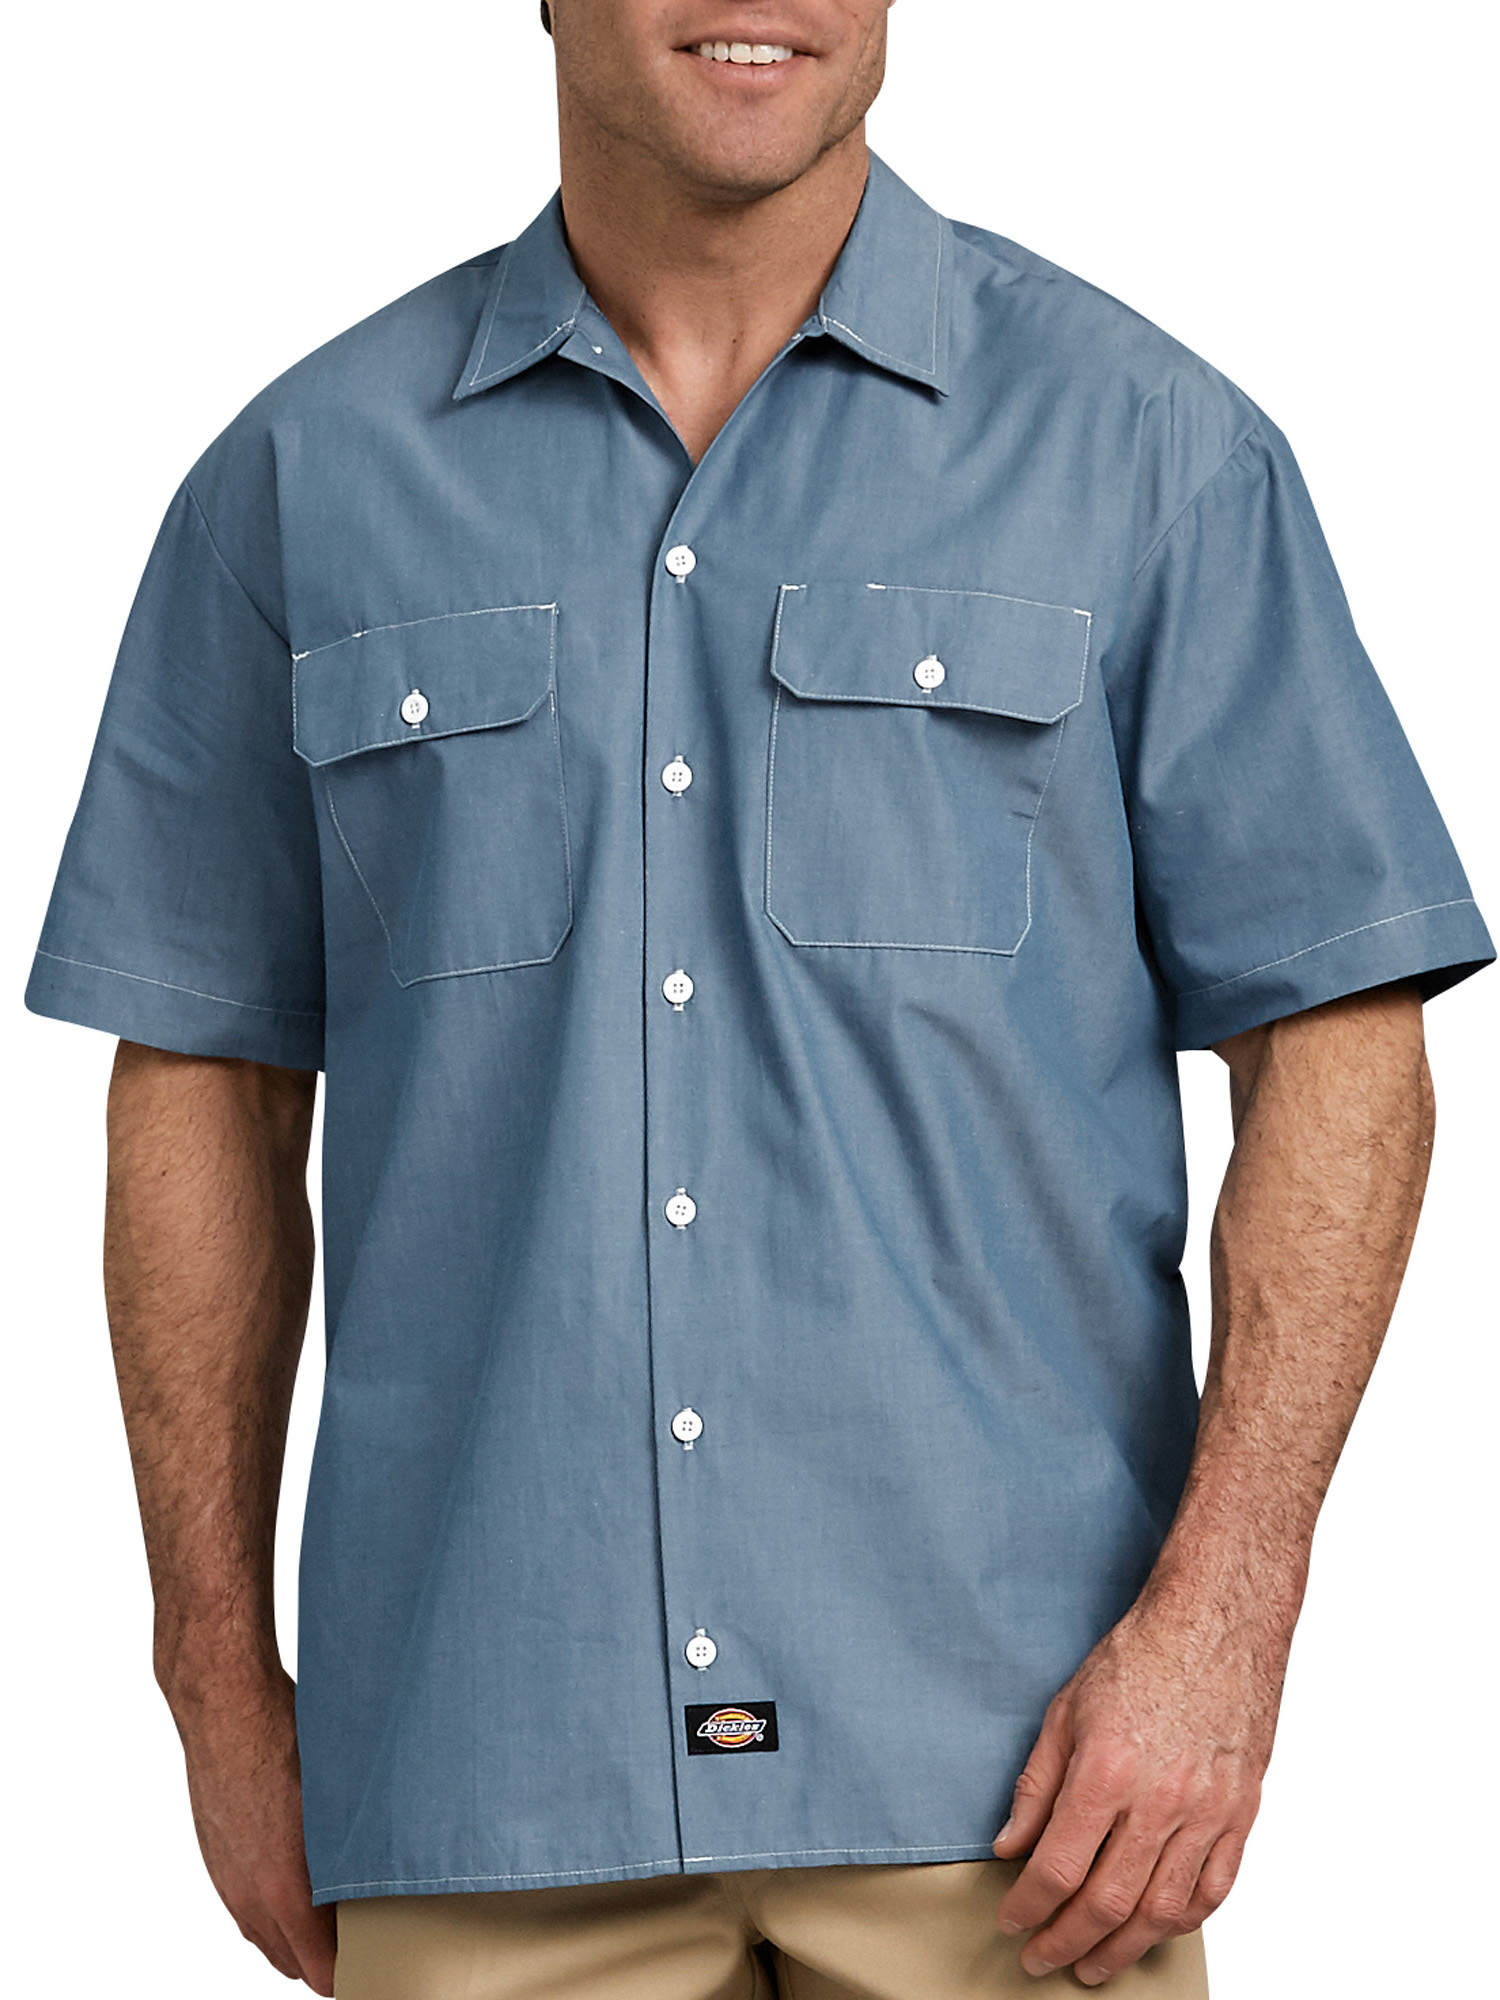 Big Men's Relaxed Fit Short Sleeve Chambray Shirt